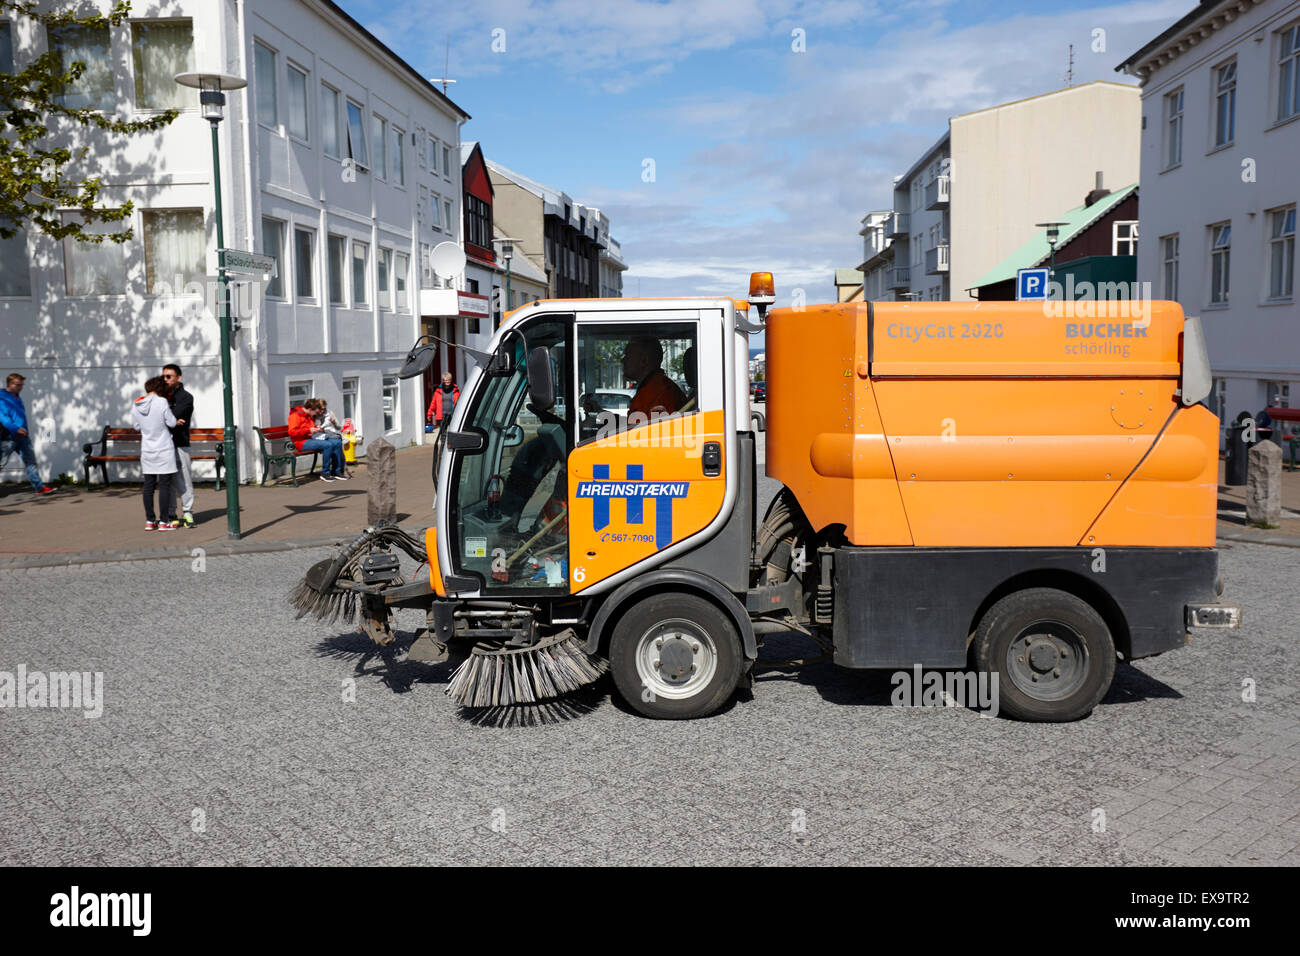 street cleaning vehicle in central city of reykjavik iceland - Stock Image